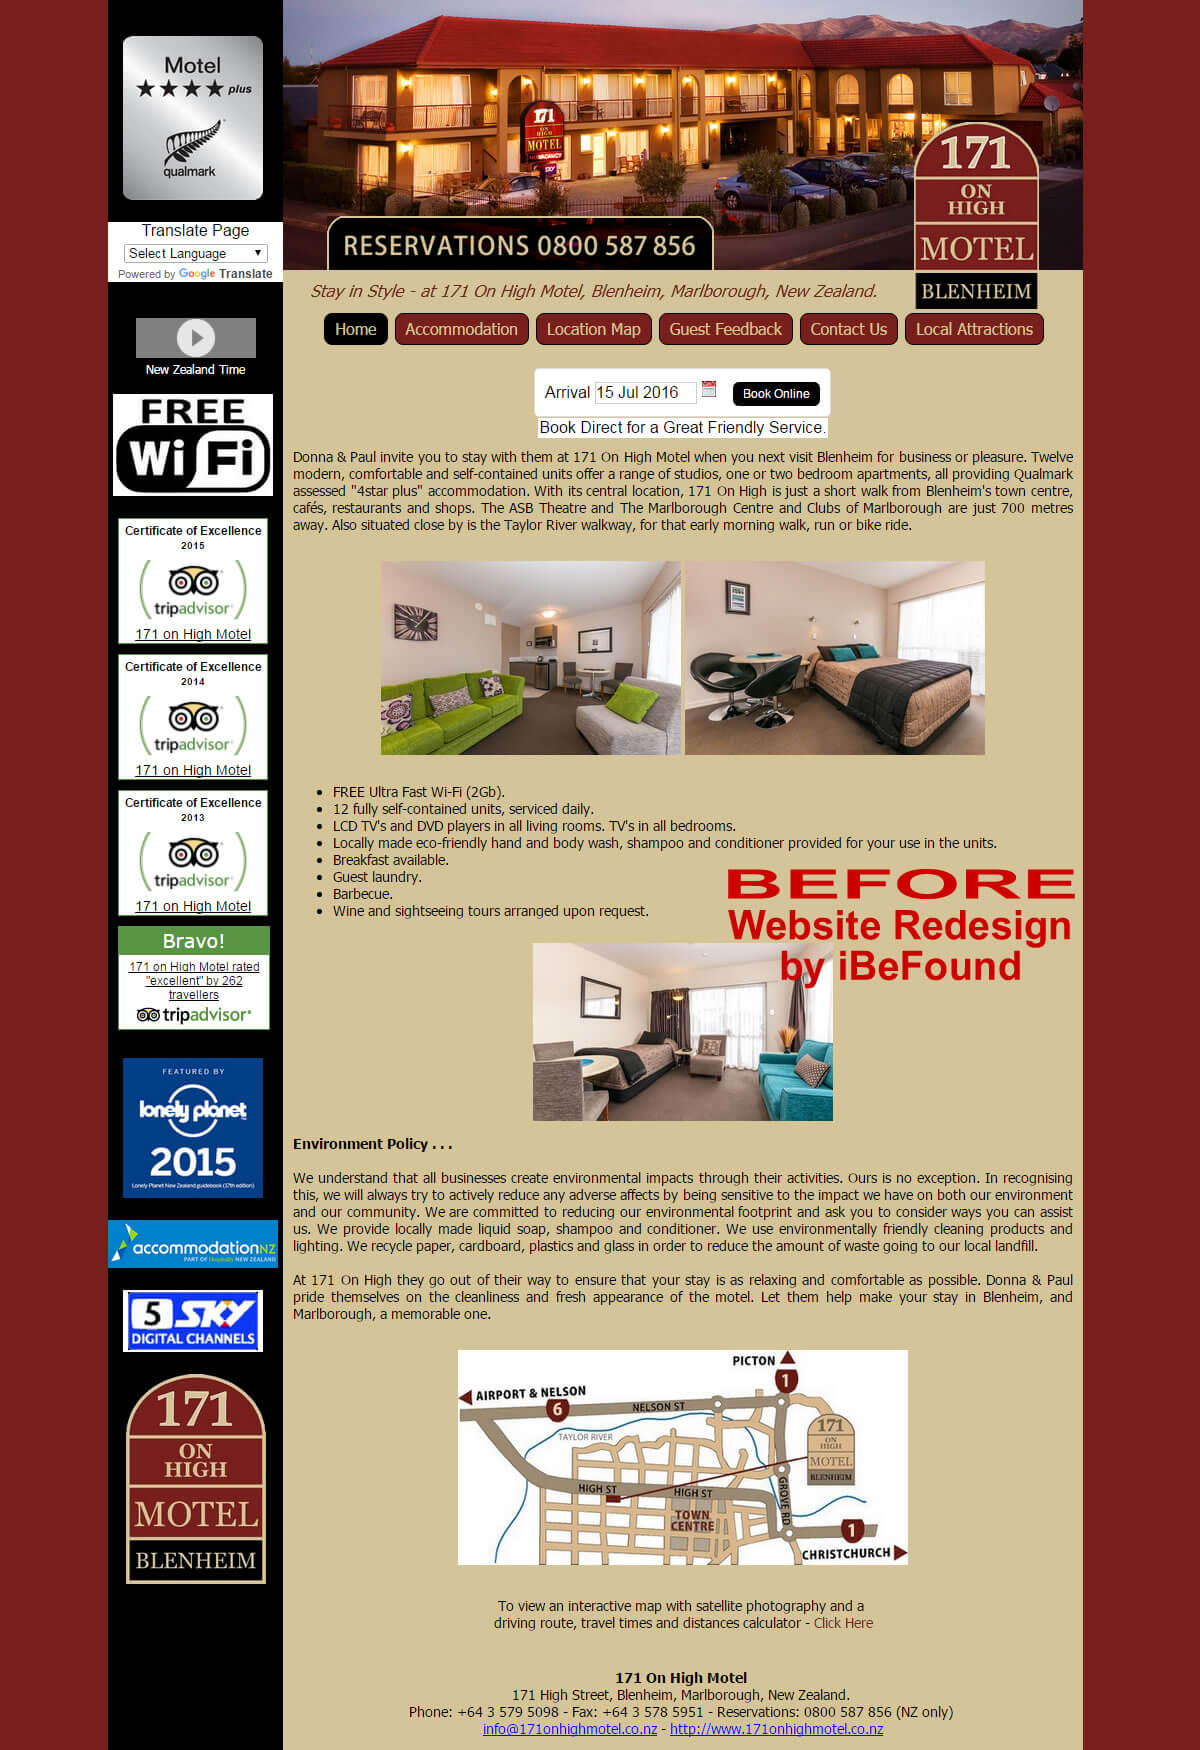 Homepage Of 171 On High Motel Before Website Redesign By iBeFound Digital Marketing Division